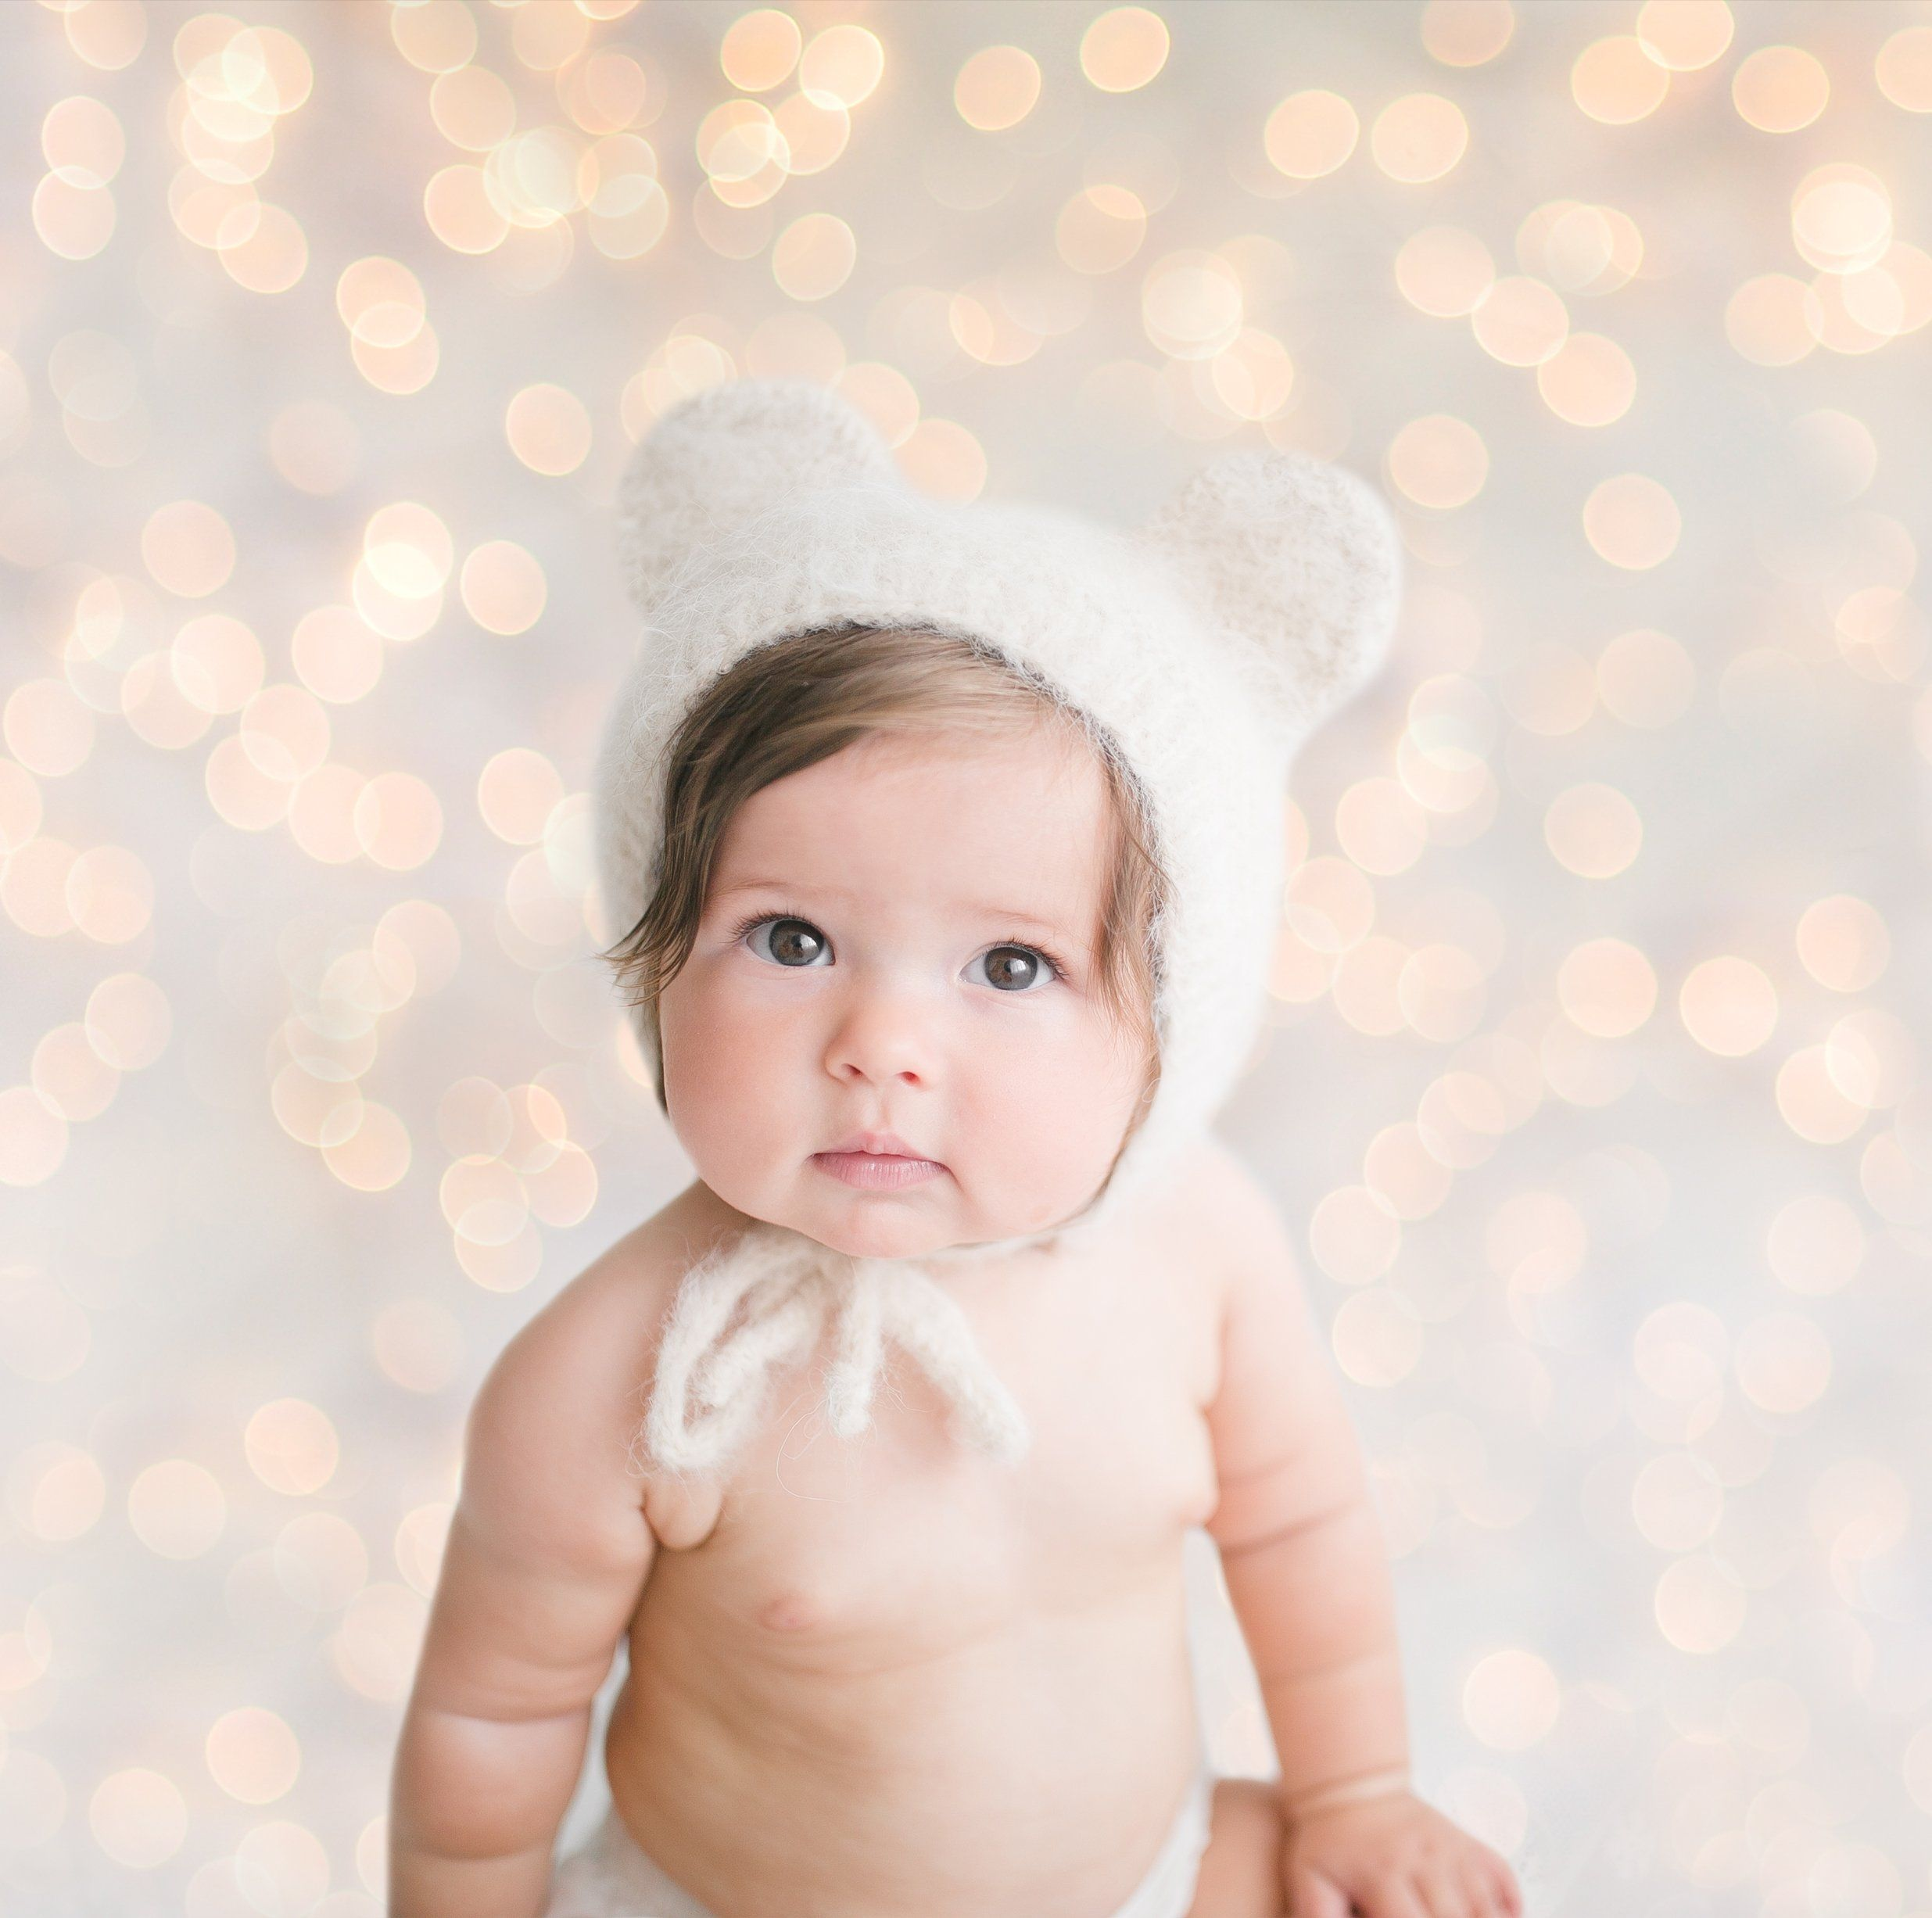 Chrsitmas Lights Overlay Digital Photography Backgrounds  - Baby With Christmas Lights